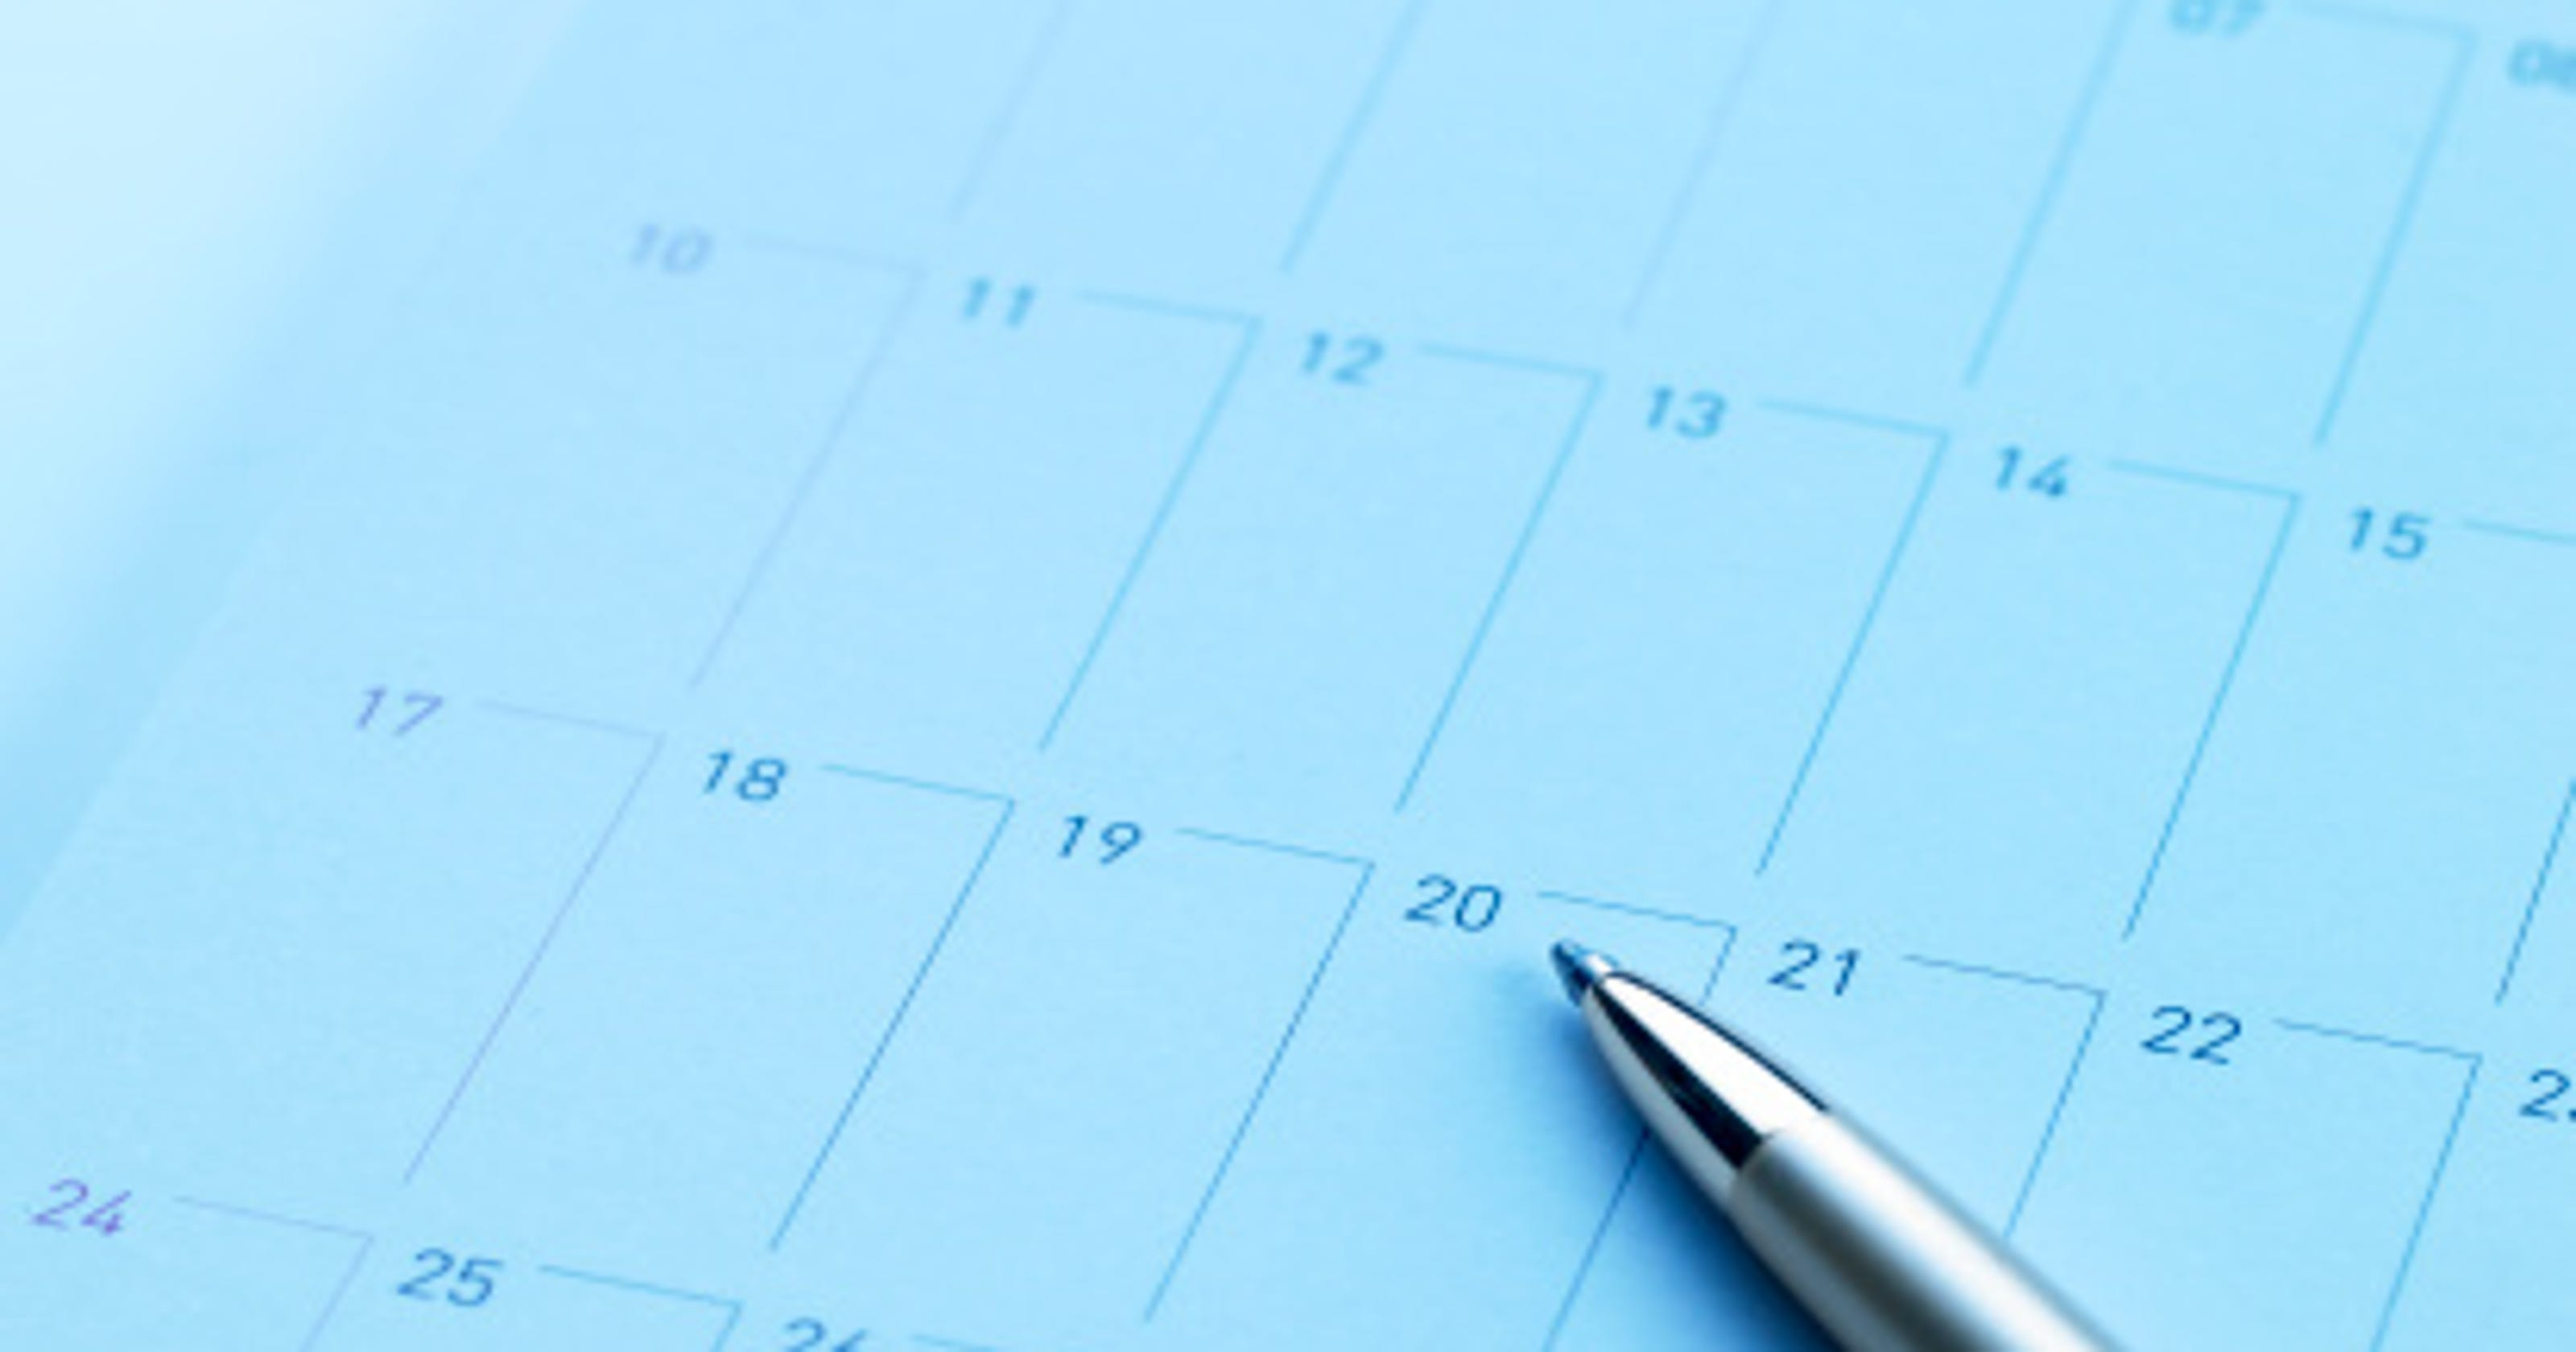 How to get Google Calendar, Outlook to sync up